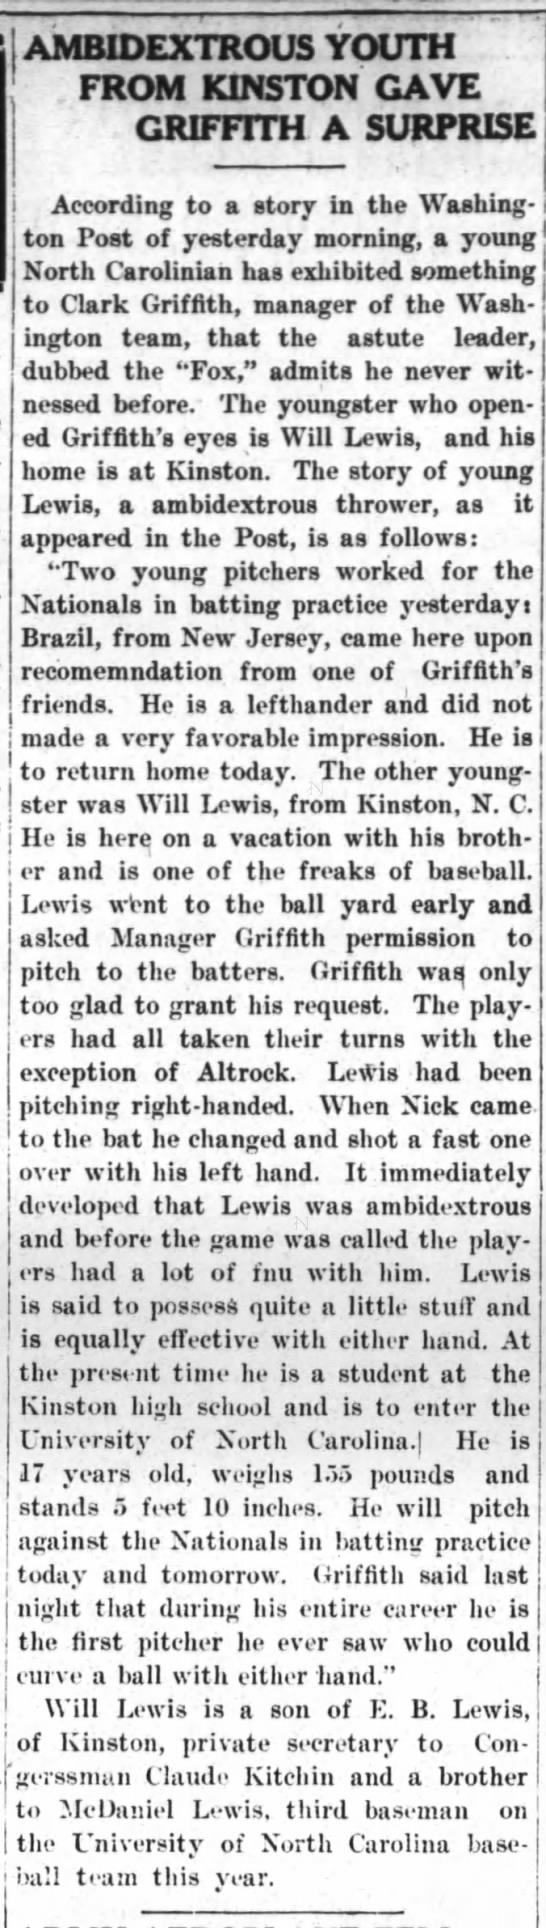 Will Lewis - Ambidextrous HS pitcher 1915